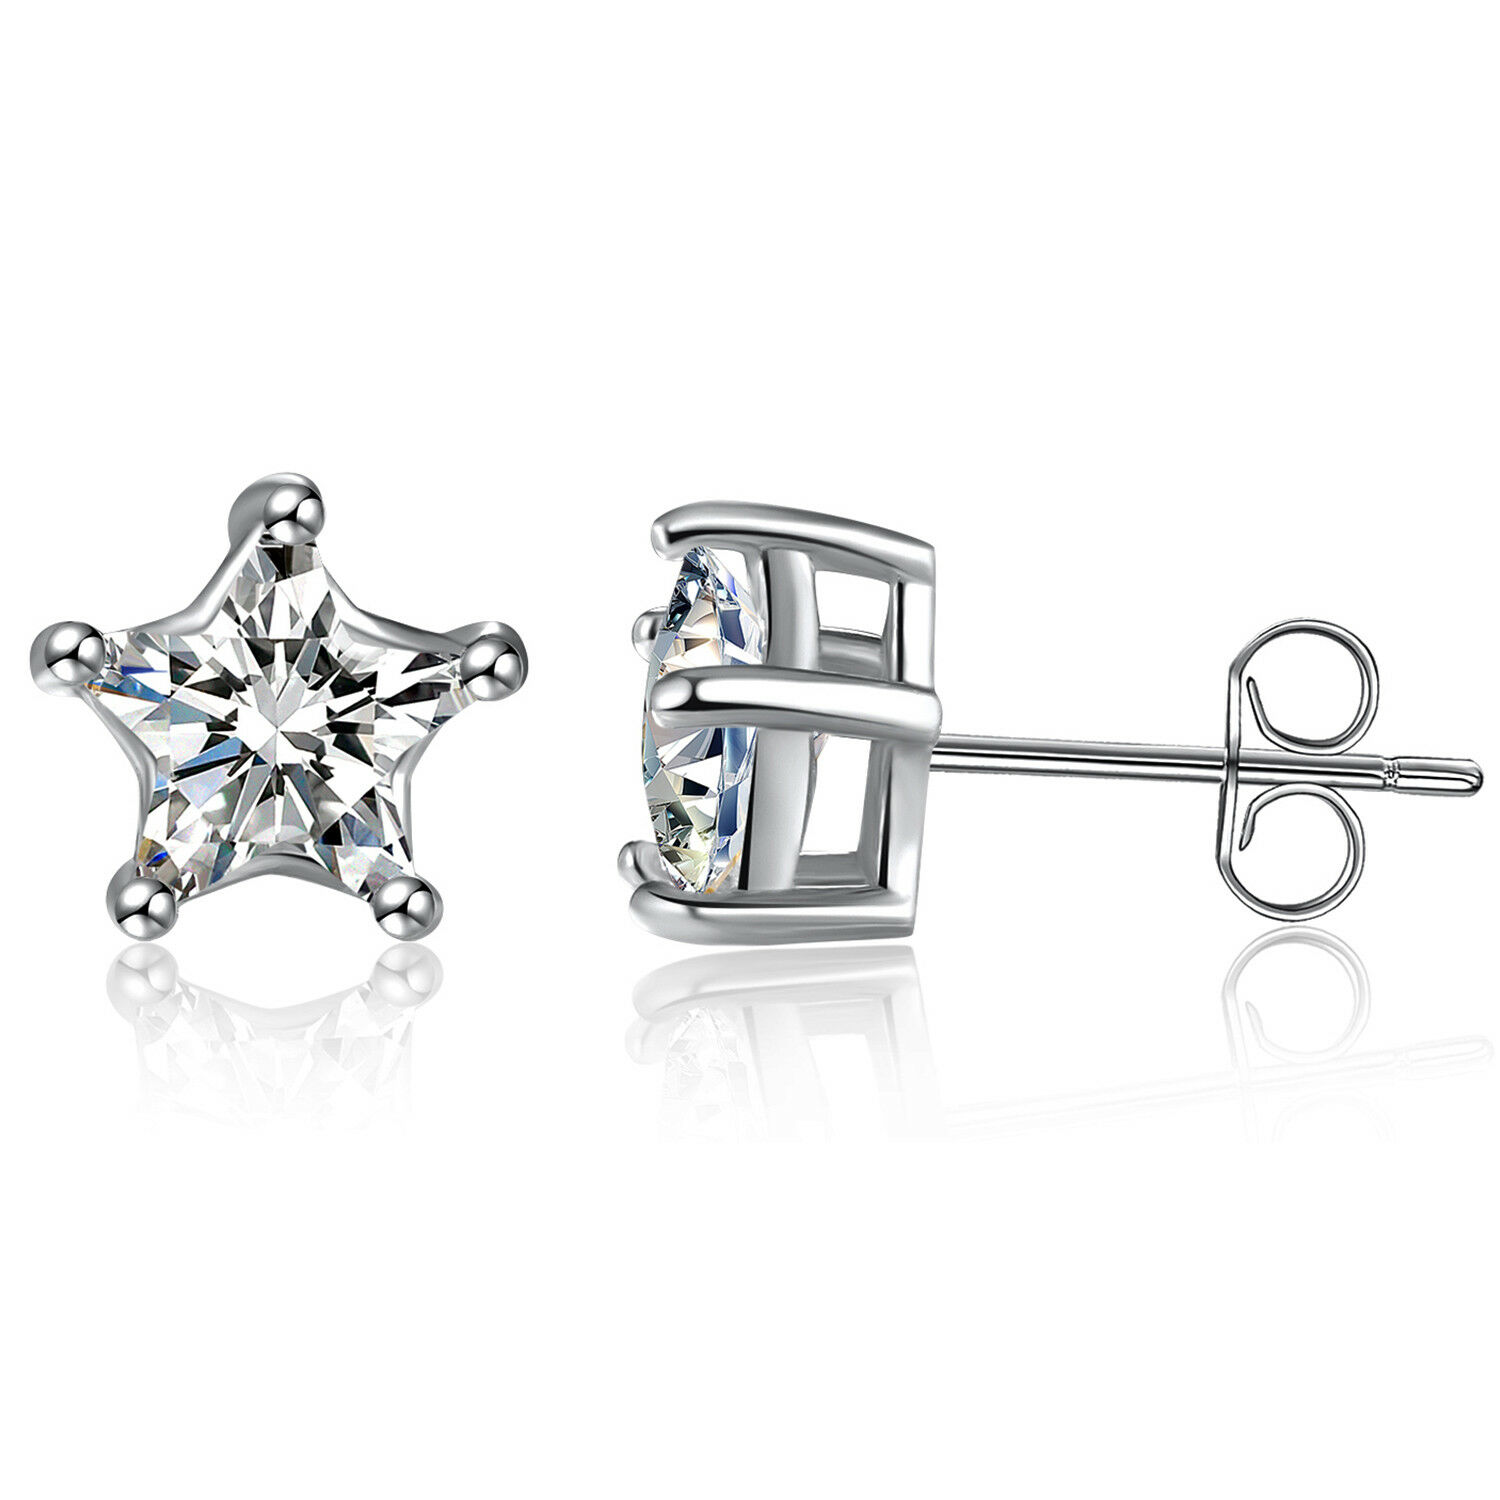 15ec19b3b Details about 925 Sterling Silver 5 Prong Star Cubic ZIrconia Stud Earrings  14k Gold Plated